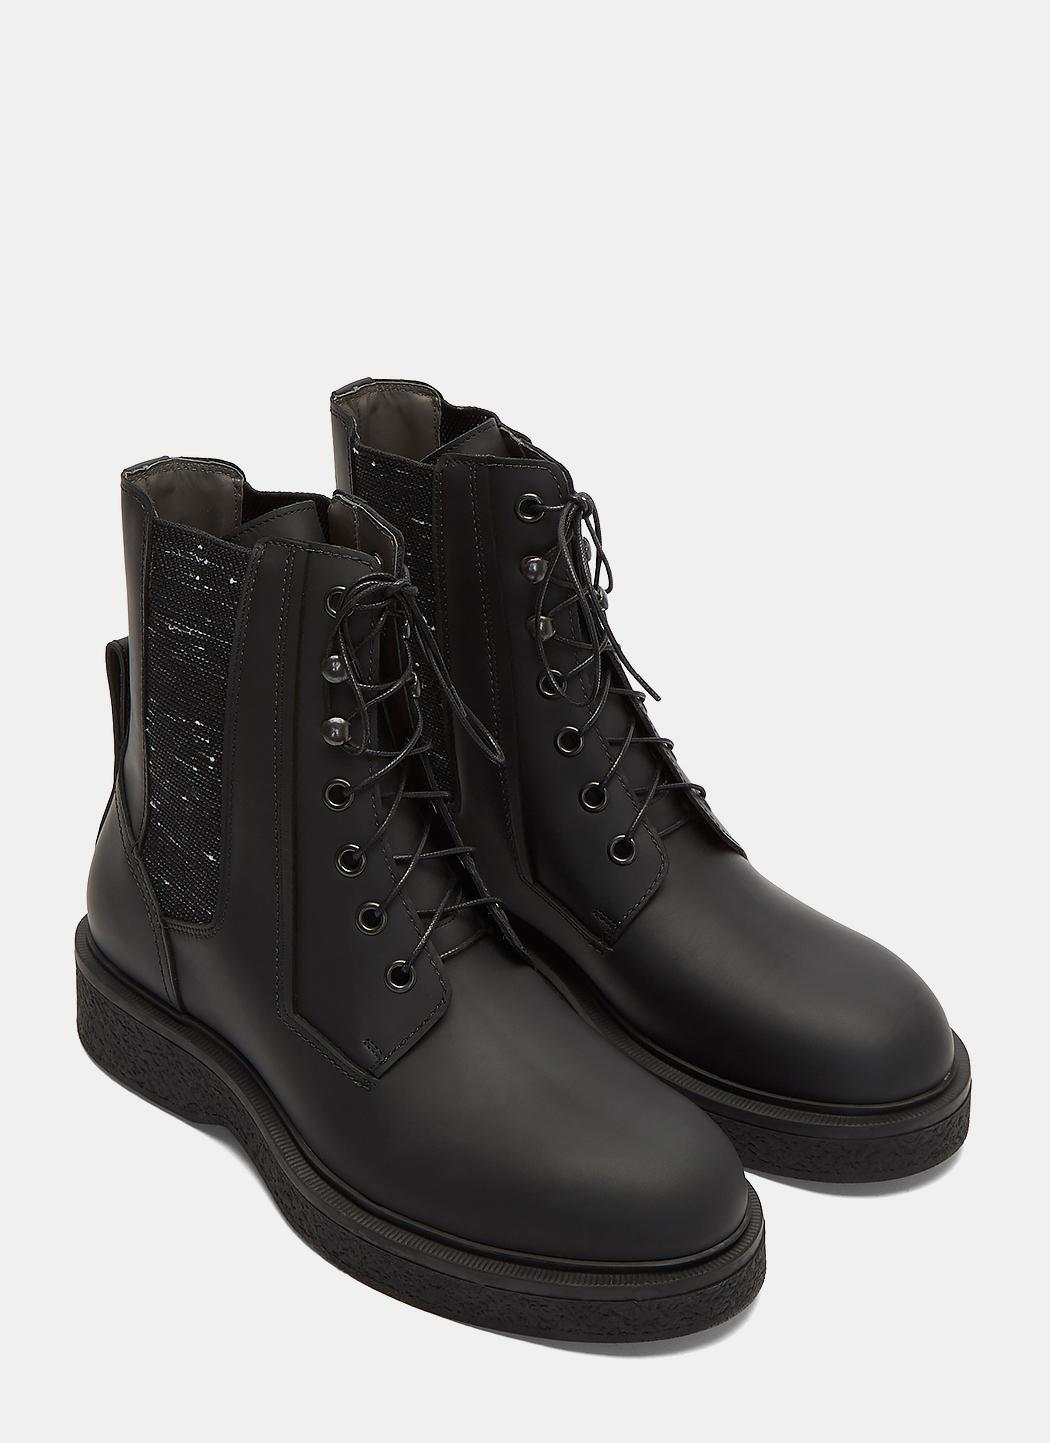 Find Lanvin men's boots at ShopStyle. Shop the latest collection of Lanvin men's boots from the most popular stores - all in one place.